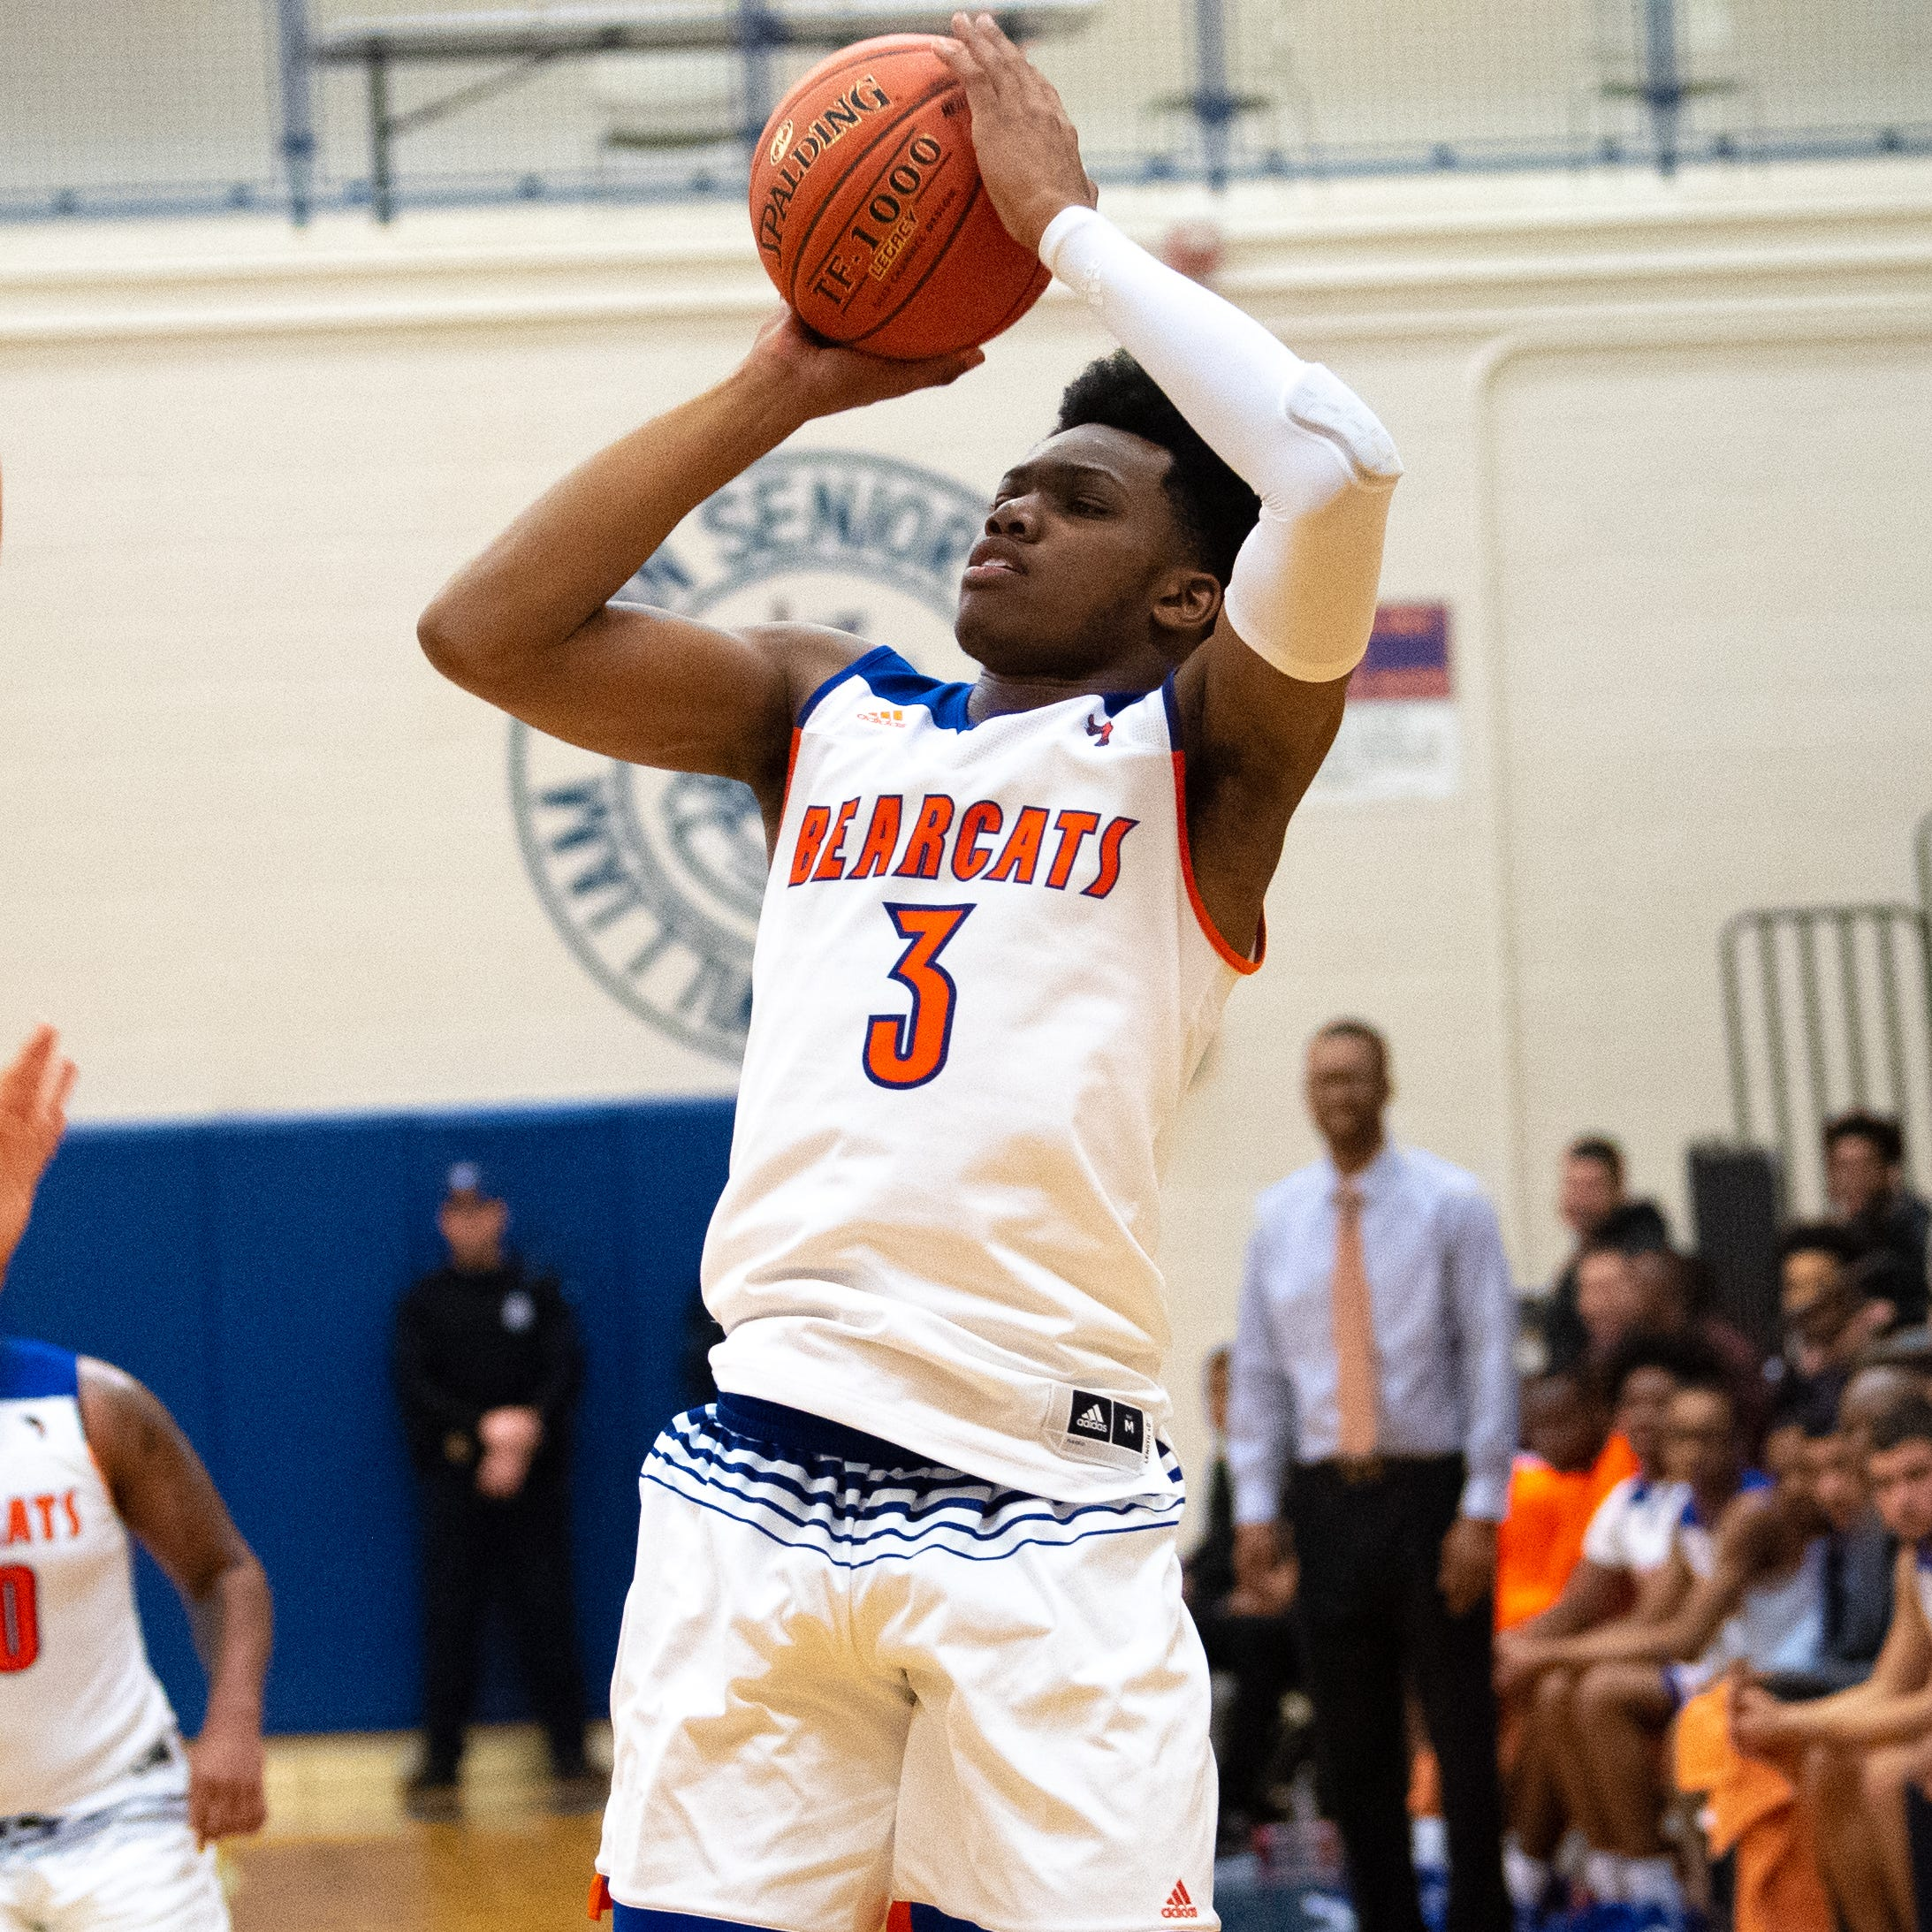 Select GameTimePA's YAIAA Athletes of the Week for games played Dec. 7-14